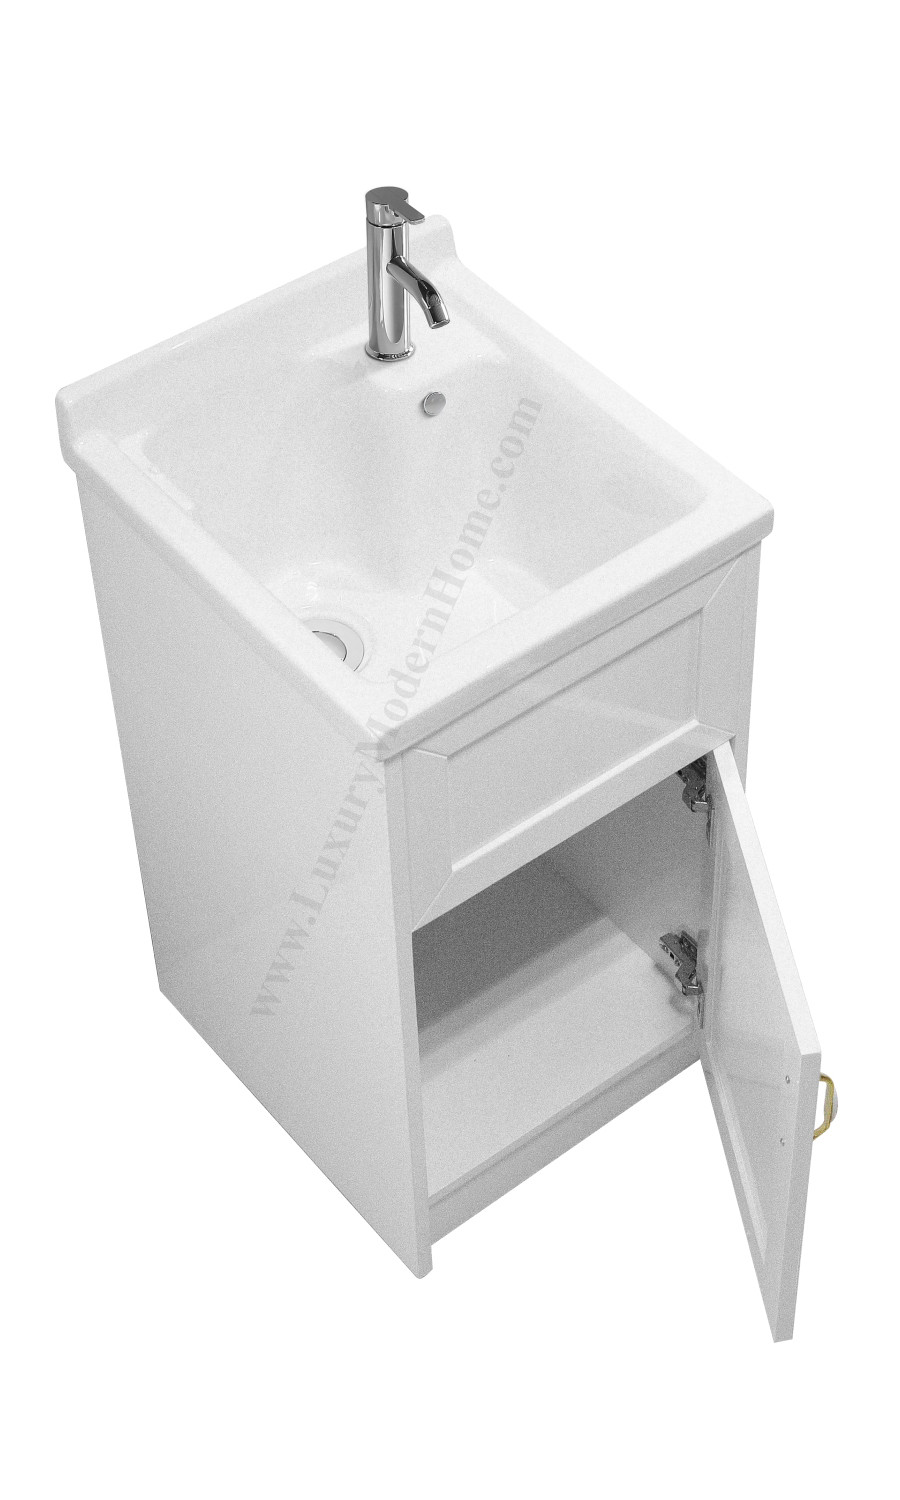 "Best ideas about Laundry Room Utility Sink . Save or Pin ALEXANDER 18"" SMALL White Laundry Utility Sink Now."